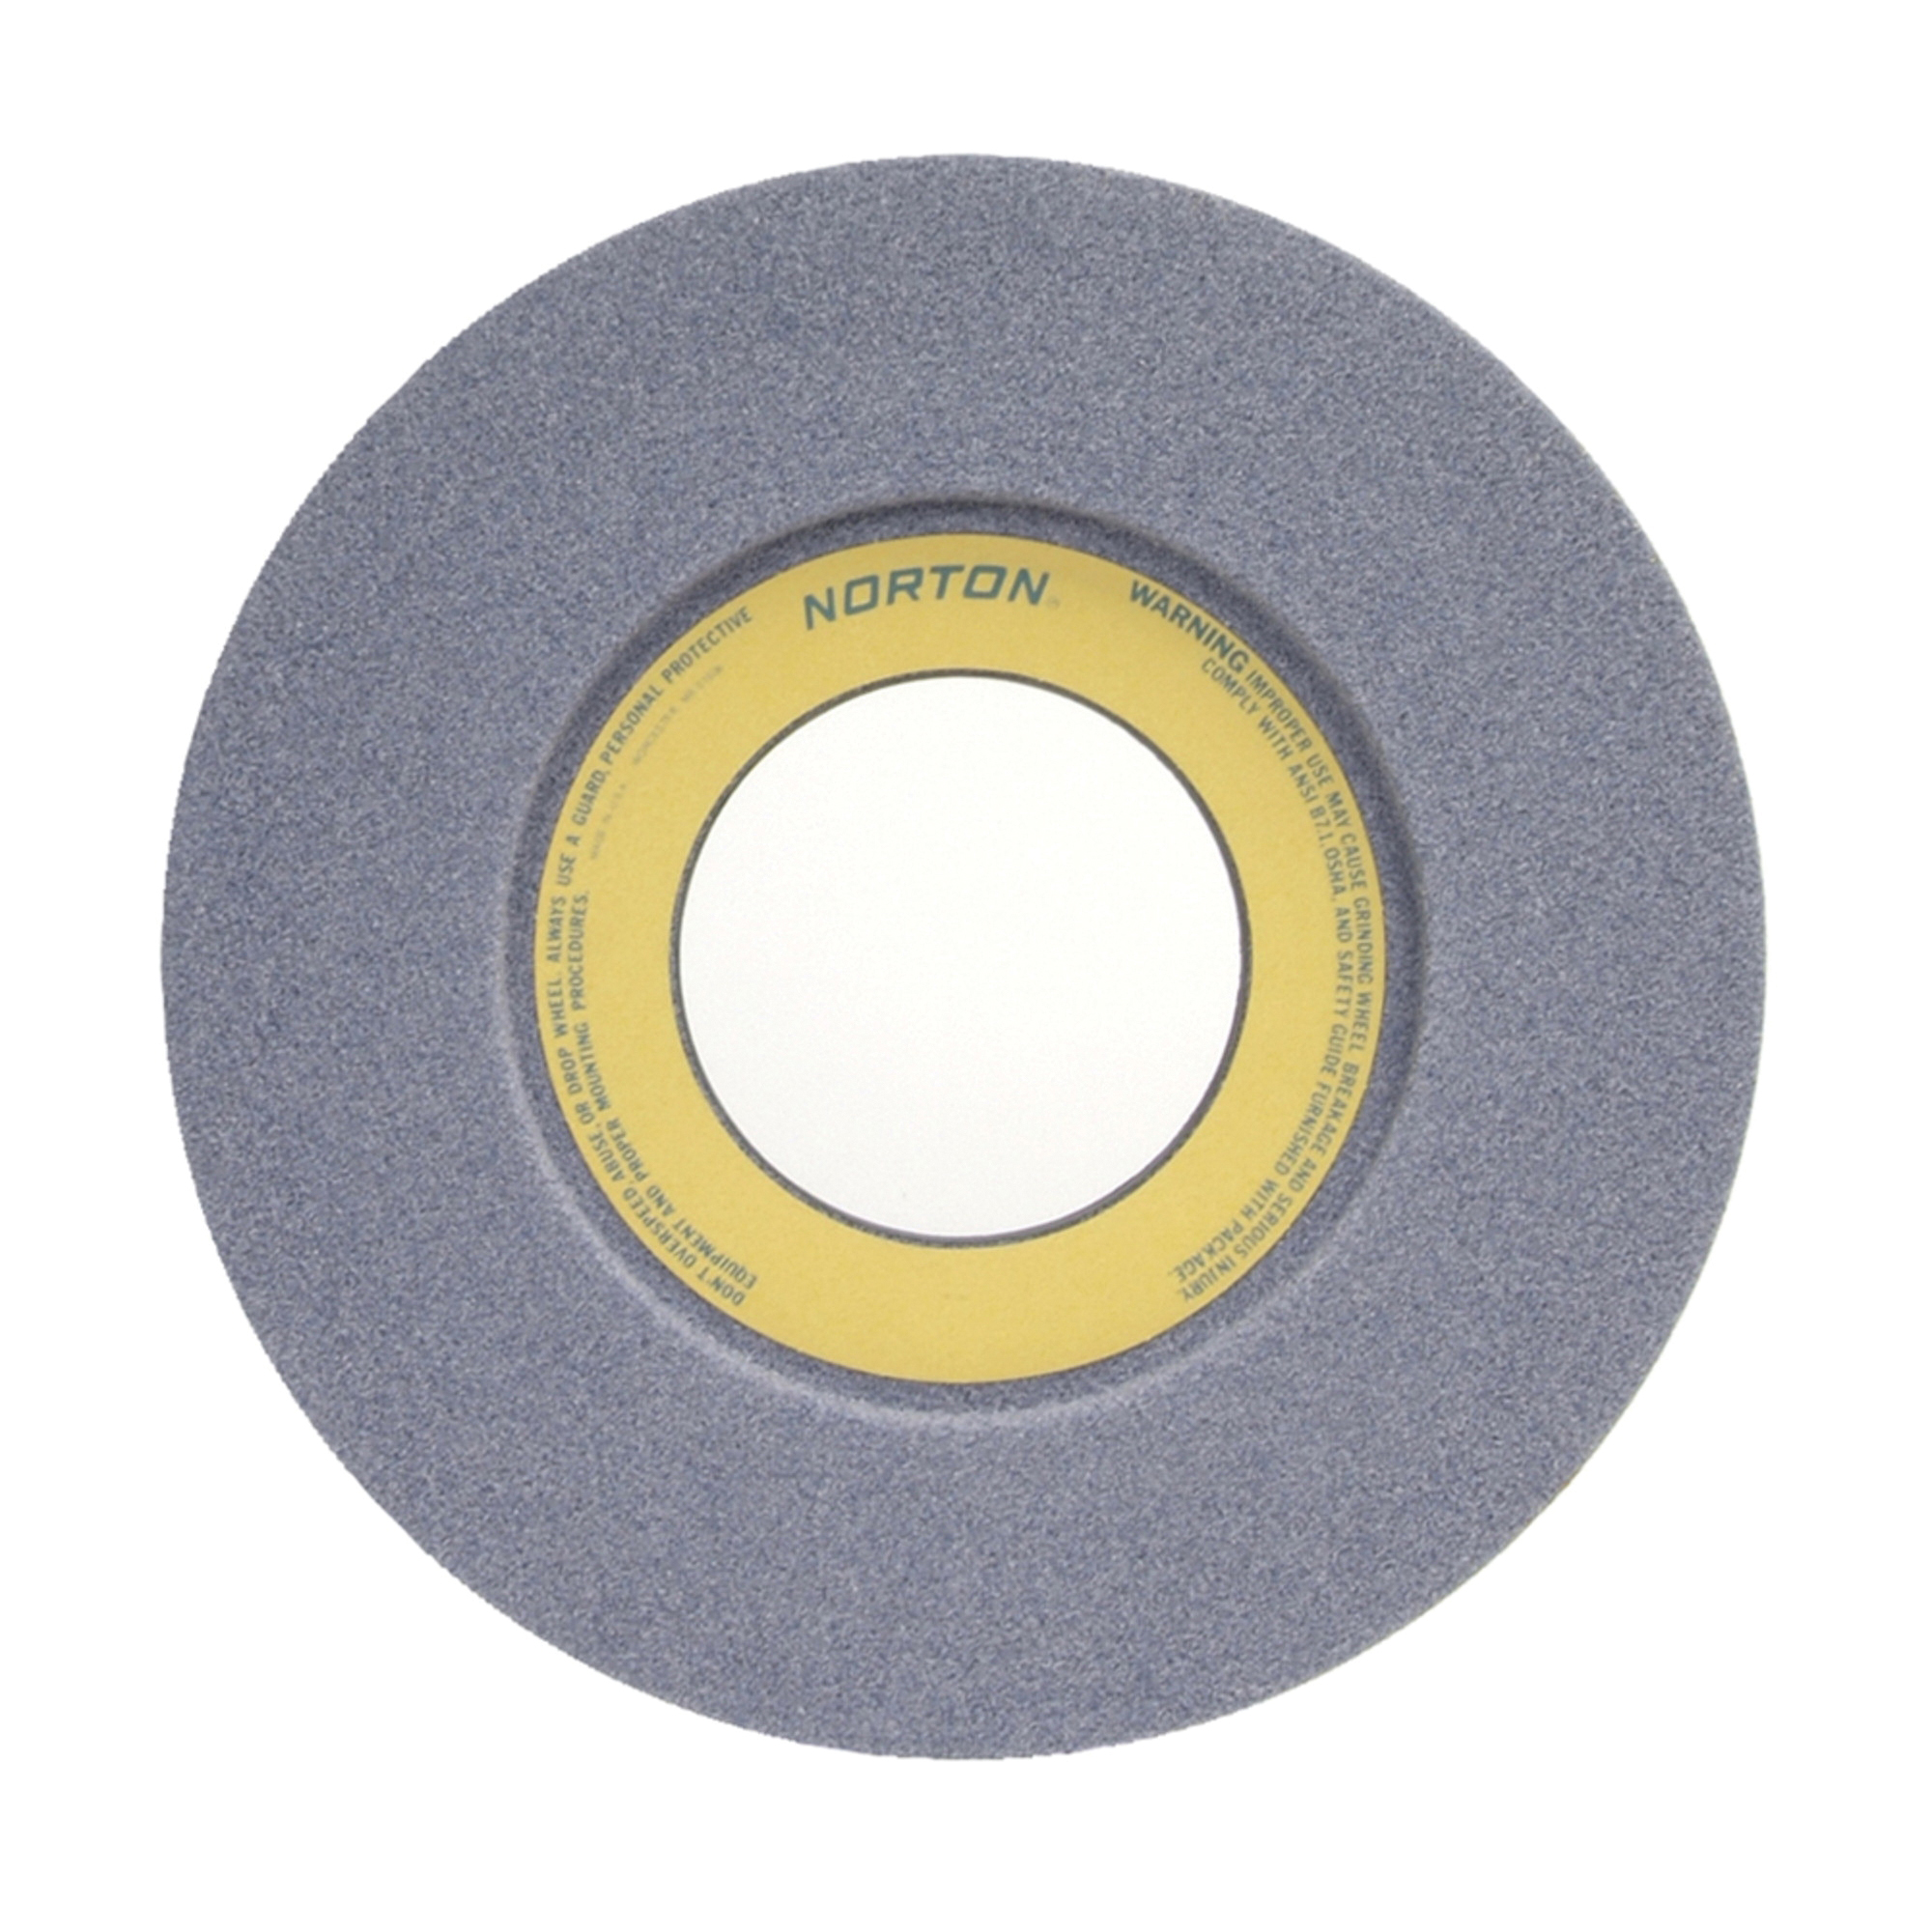 Norton® 66253364359 32A 1-Side Recessed Toolroom Wheel, 14 in Dia x 1-1/2 in THK, 5 in Center Hole, 46 Grit, Aluminum Oxide Abrasive